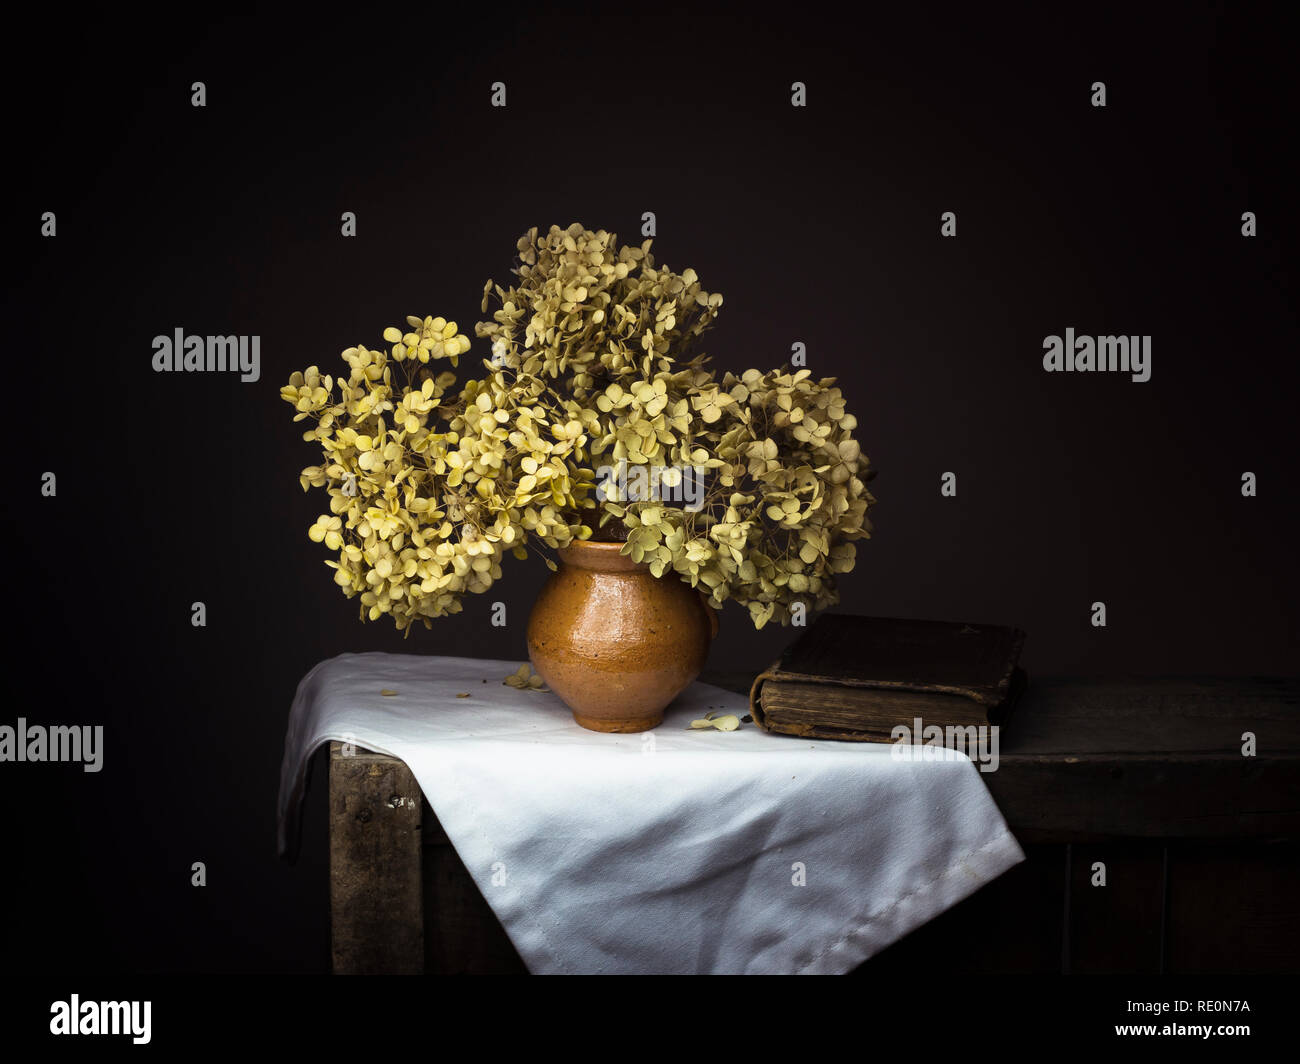 Dramatic chiaroscuro style photo of dried hydrangea flowers with old book on dark background. Melancholy still life with copy space. - Stock Image